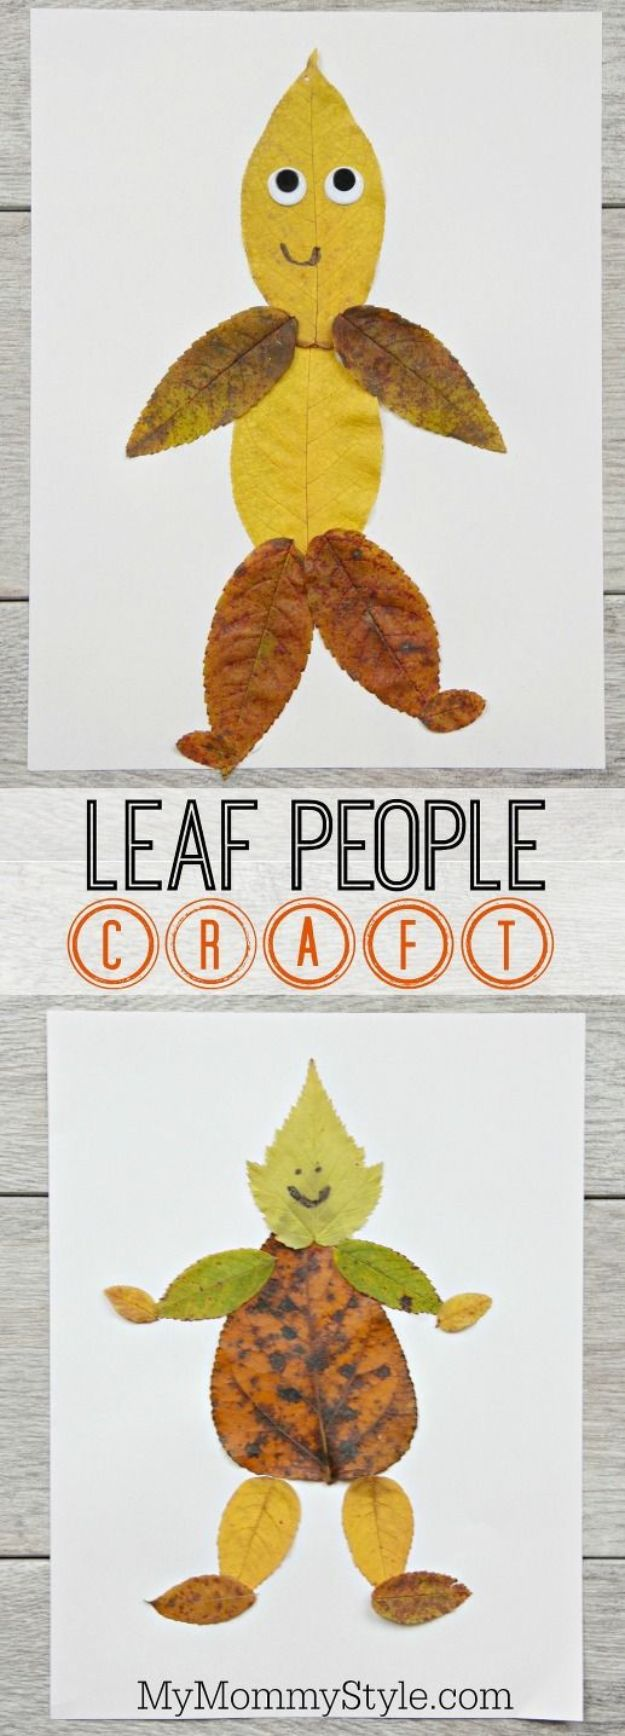 Fun Fall Crafts for Kids - Leaf People Craft - Cool Crafts Ideas for Kids to Make With Paper, Glue, Leaves, Corn Husk, Pumpkin and Glitter - Halloween and Thanksgiving - Children Love Making Art, Paintings, Cards and Fall Decor - Placemats, Place Cards, Wall Art , Party Food and Decorations for Toddlers, Boys and Girls http://diyjoy.com/fun-fall-crafts-kids